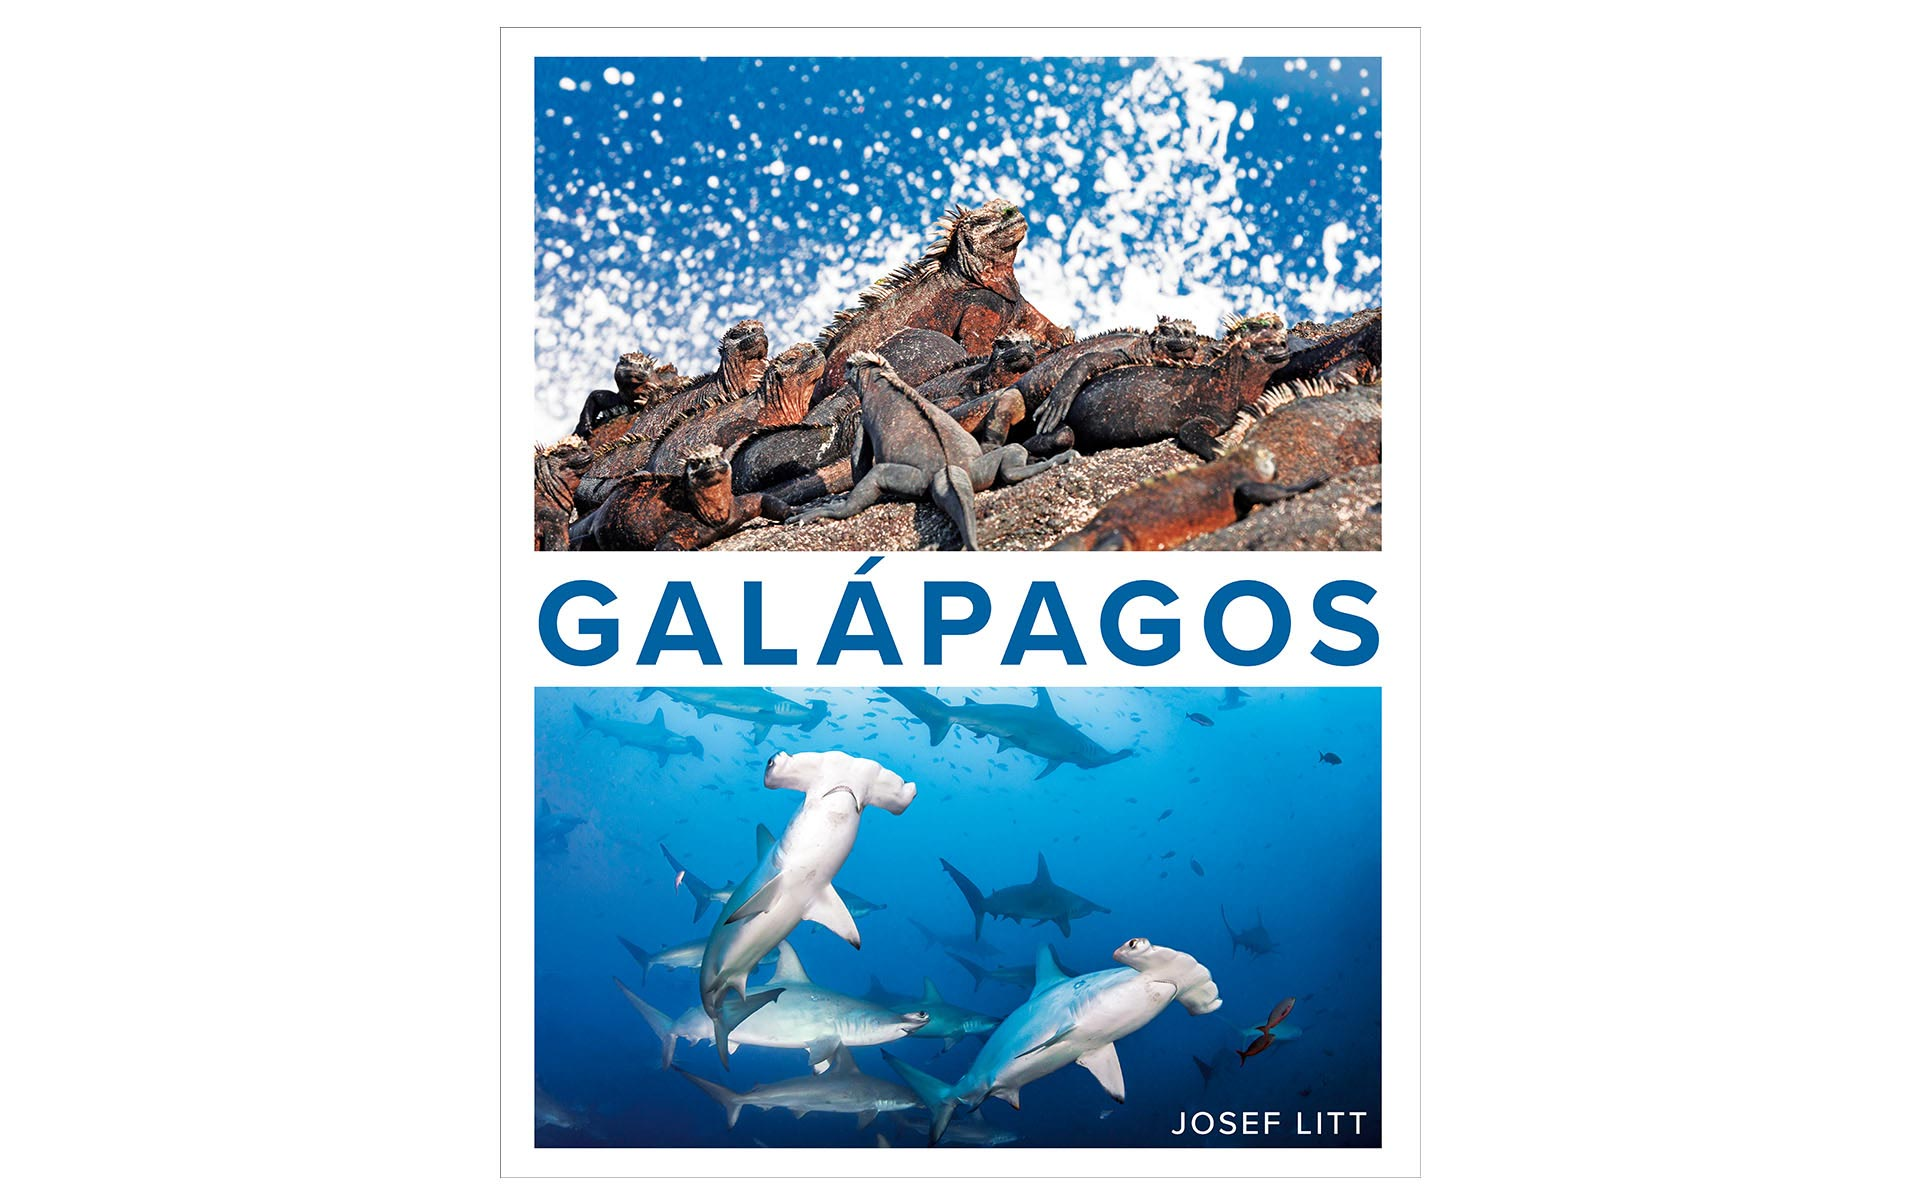 Cover of GALÁPAGOS by Josef Litt